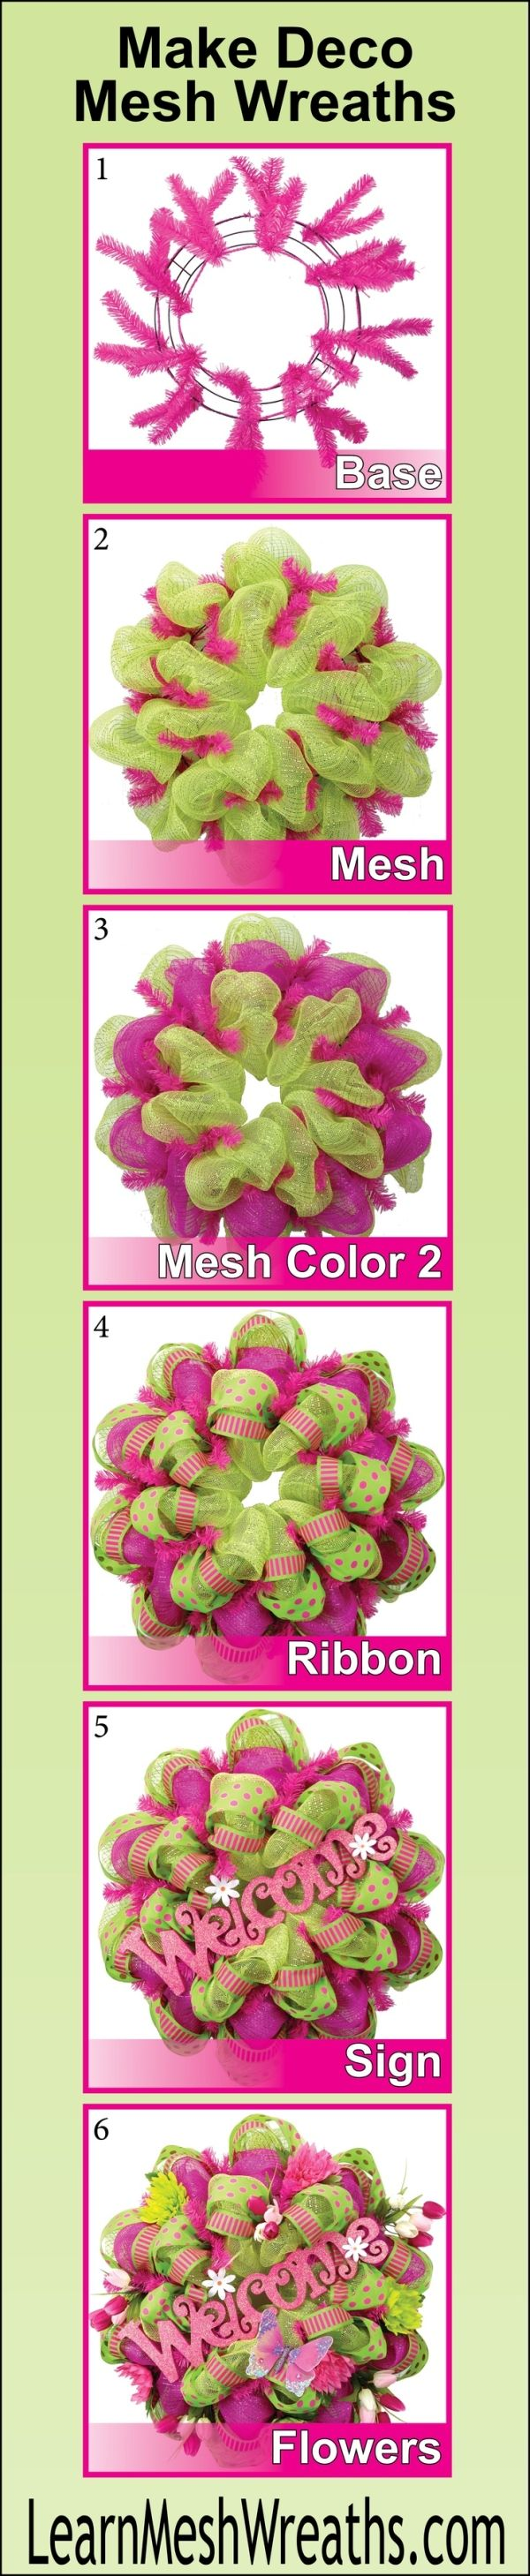 Learn step-by-step how to make beautiful mesh wreaths.